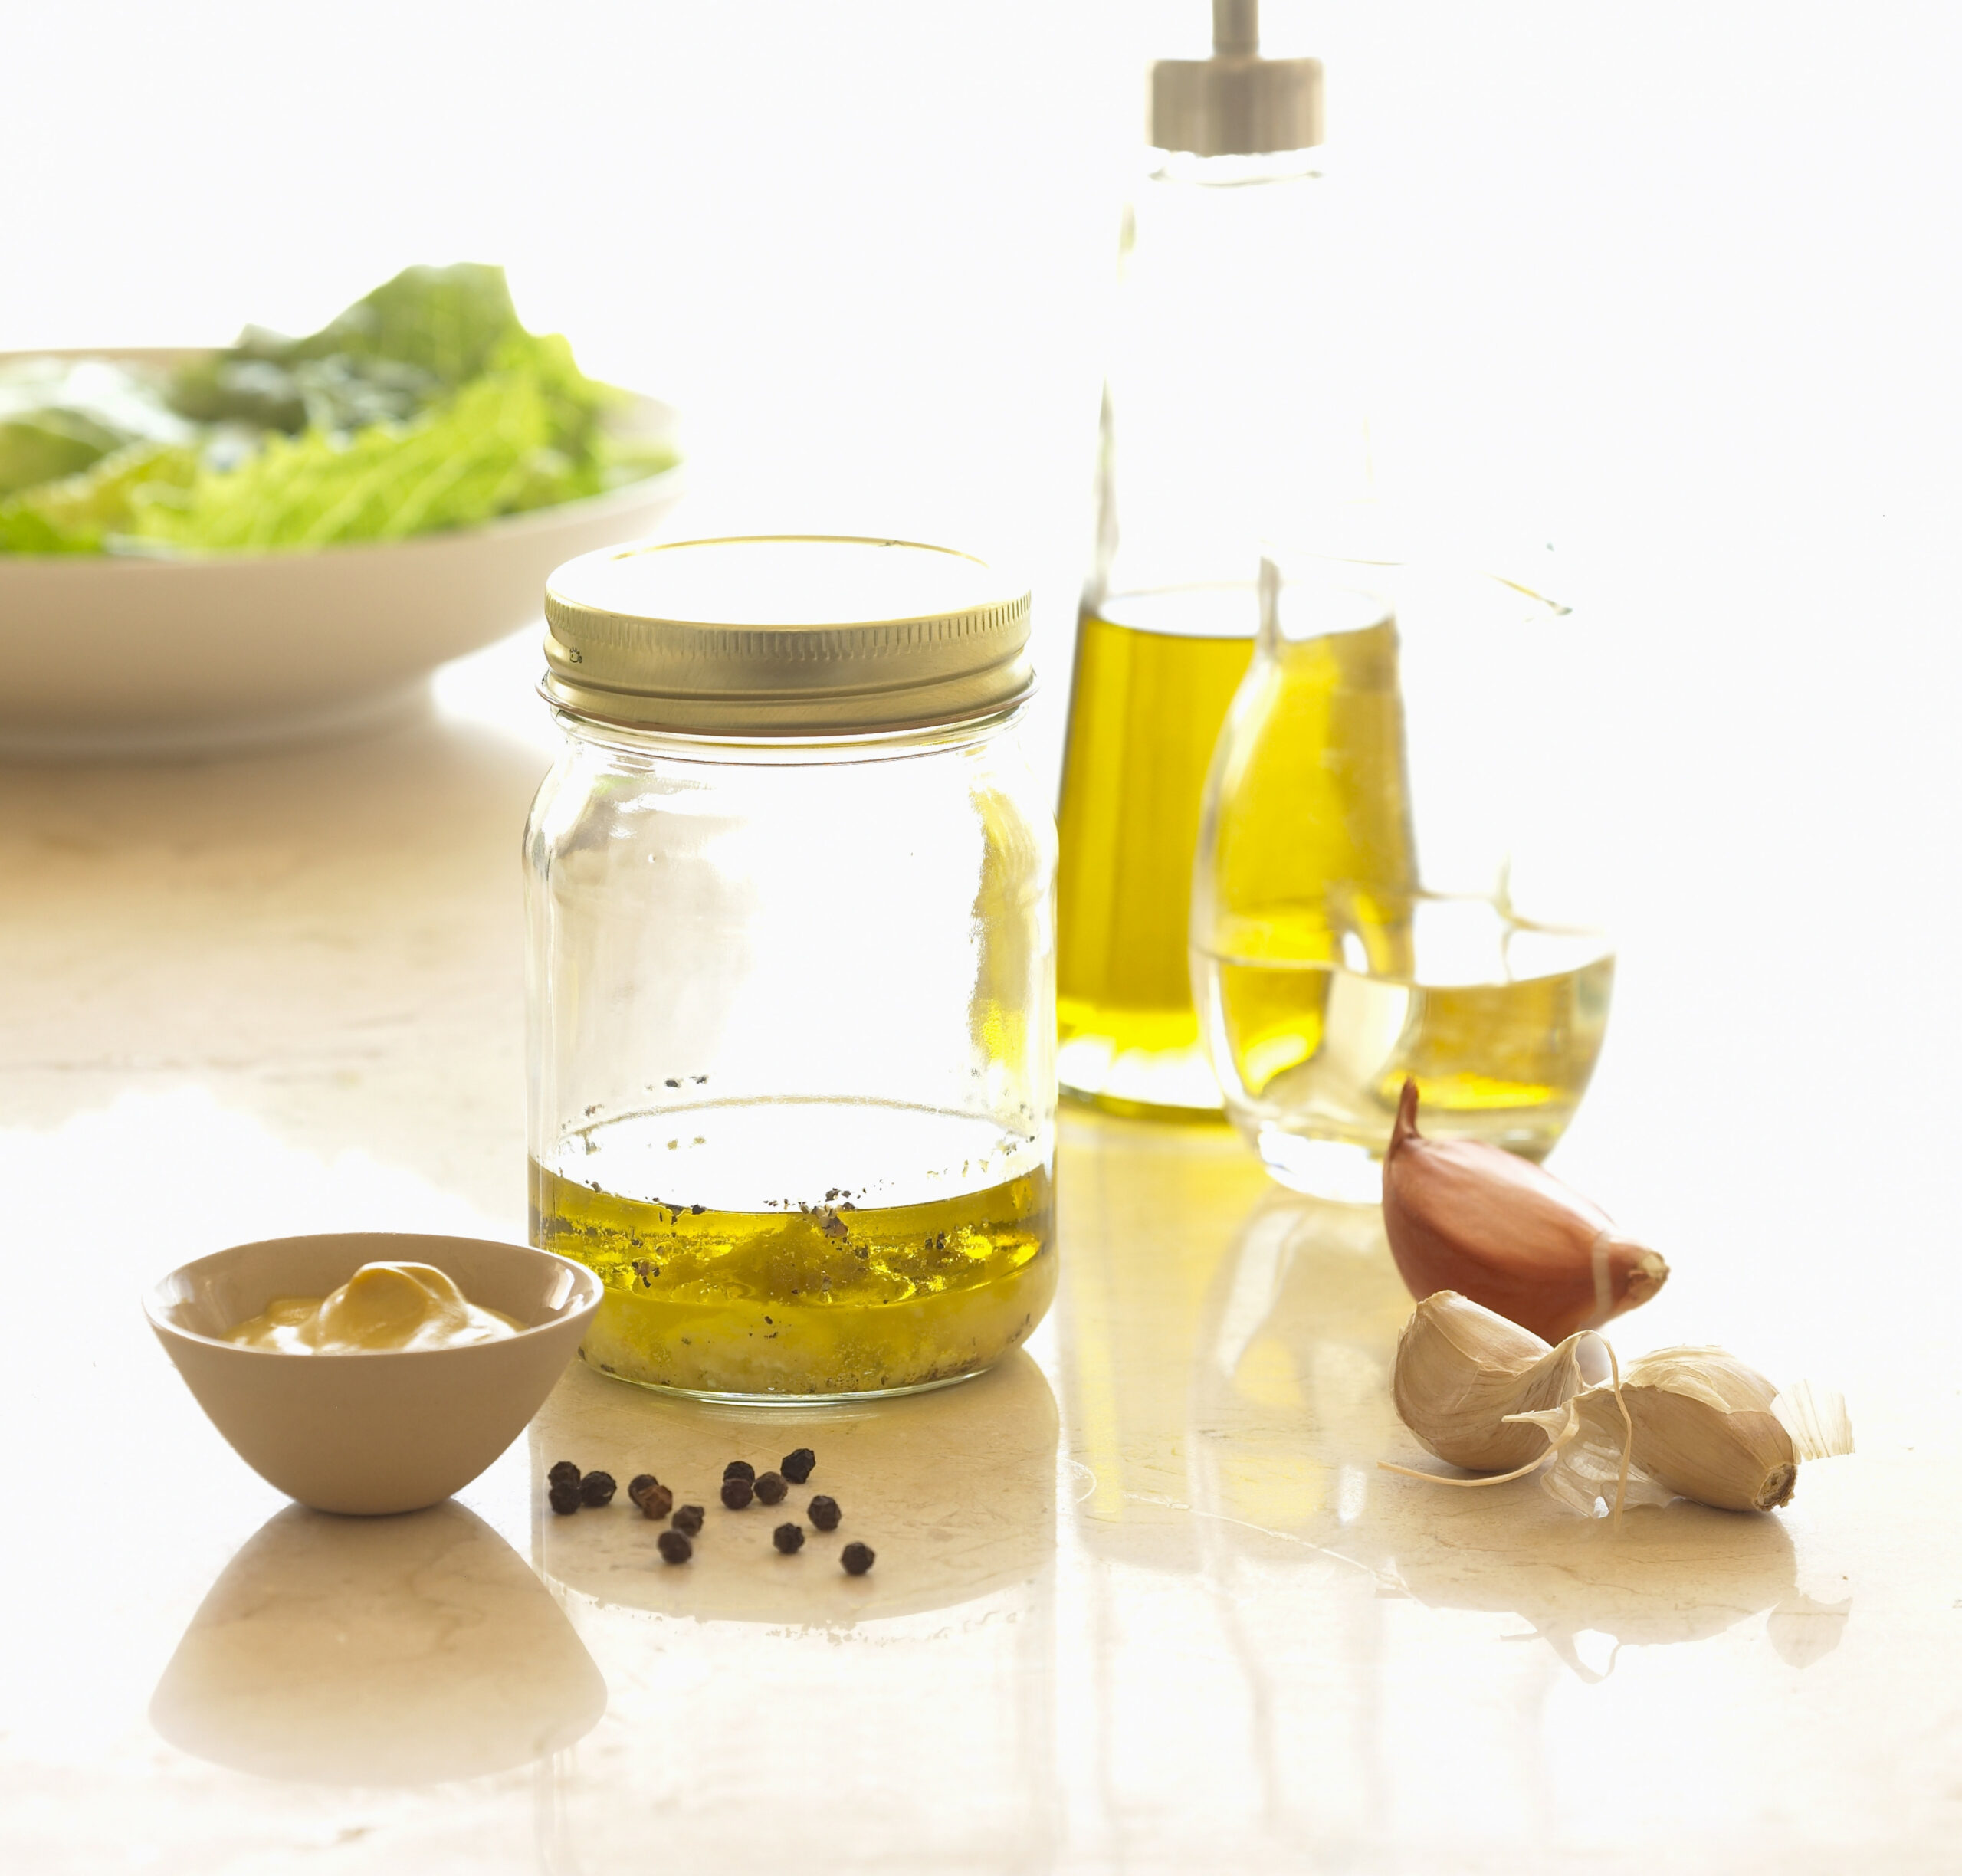 Six Healthy Reasons To Make Your Own Salad Dressing And An ..